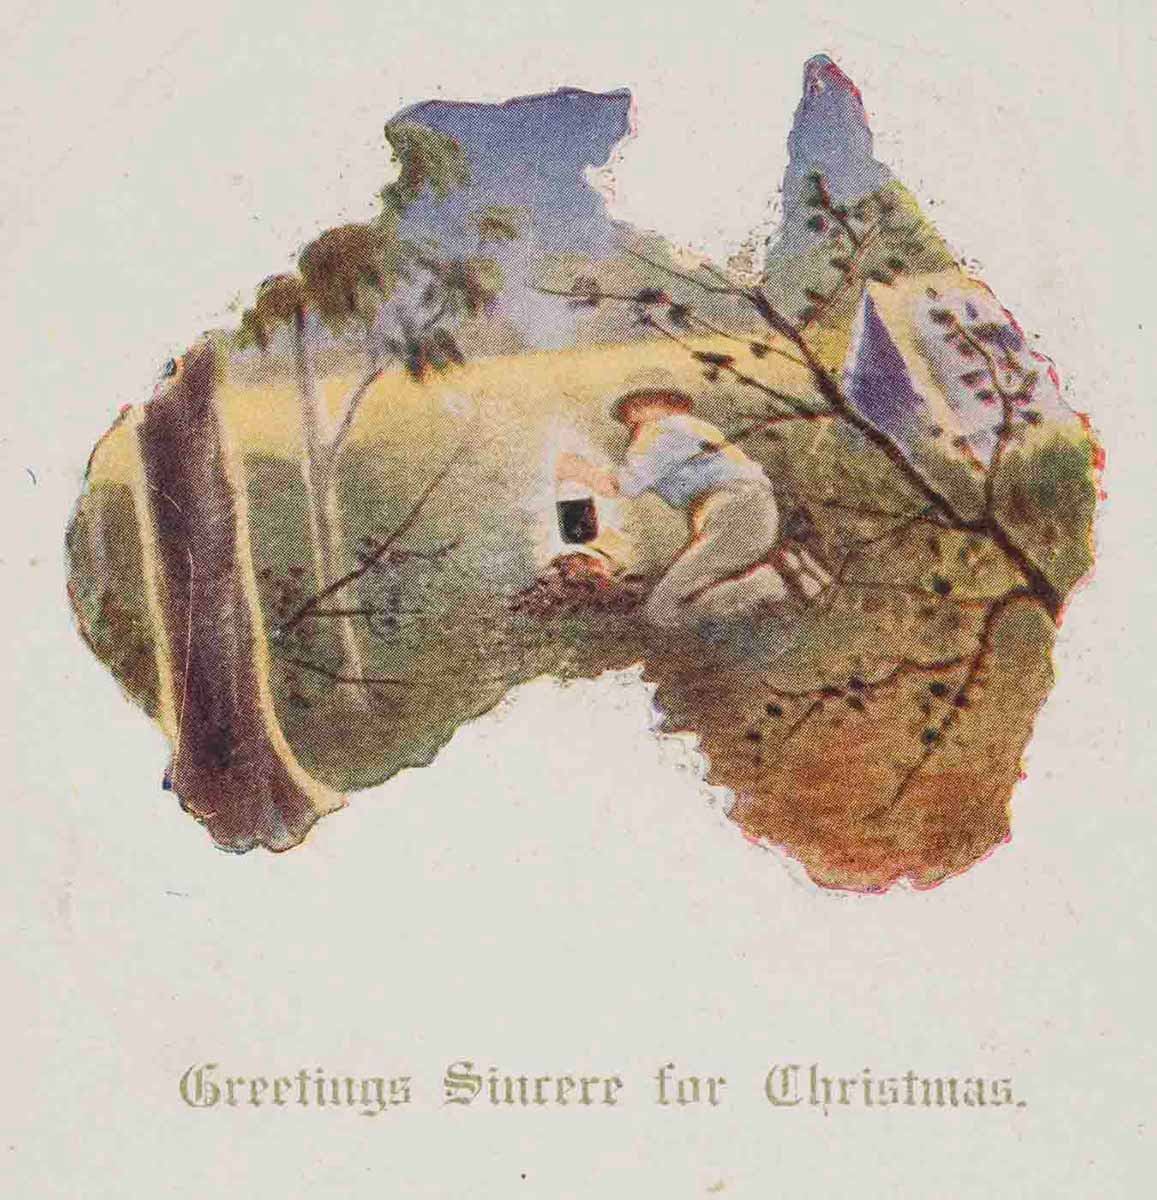 Postcard featuring an Australian bush setting with a man holding a billy over a camp fire. The scene is set within the outline of a map of Australia. The text reads 'Greetings Sincere for Christmas.' - click to view larger image